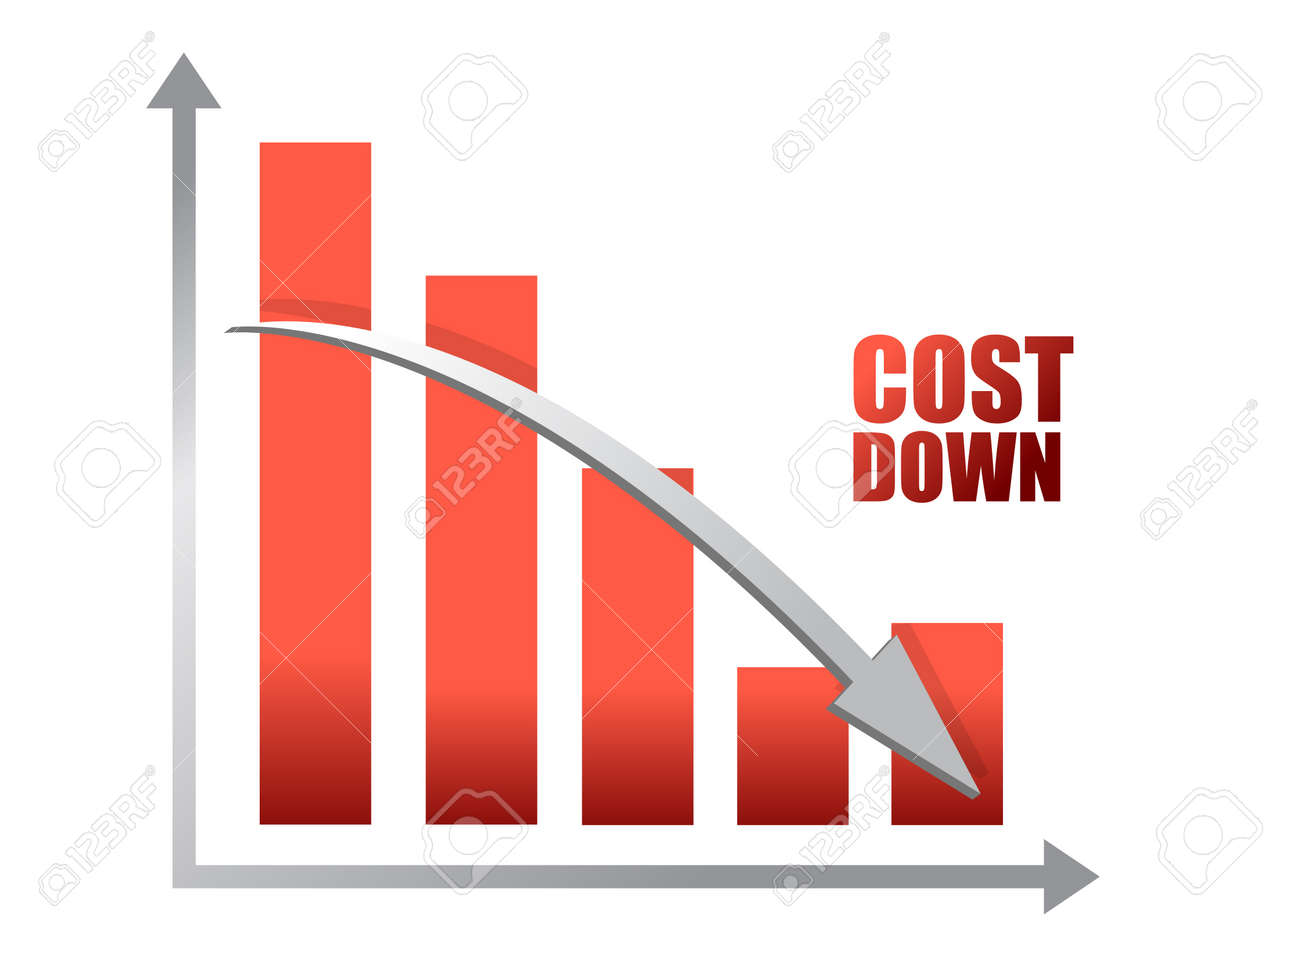 Chalk drawing - Cost down chart illustration design Stock Vector - 12496350